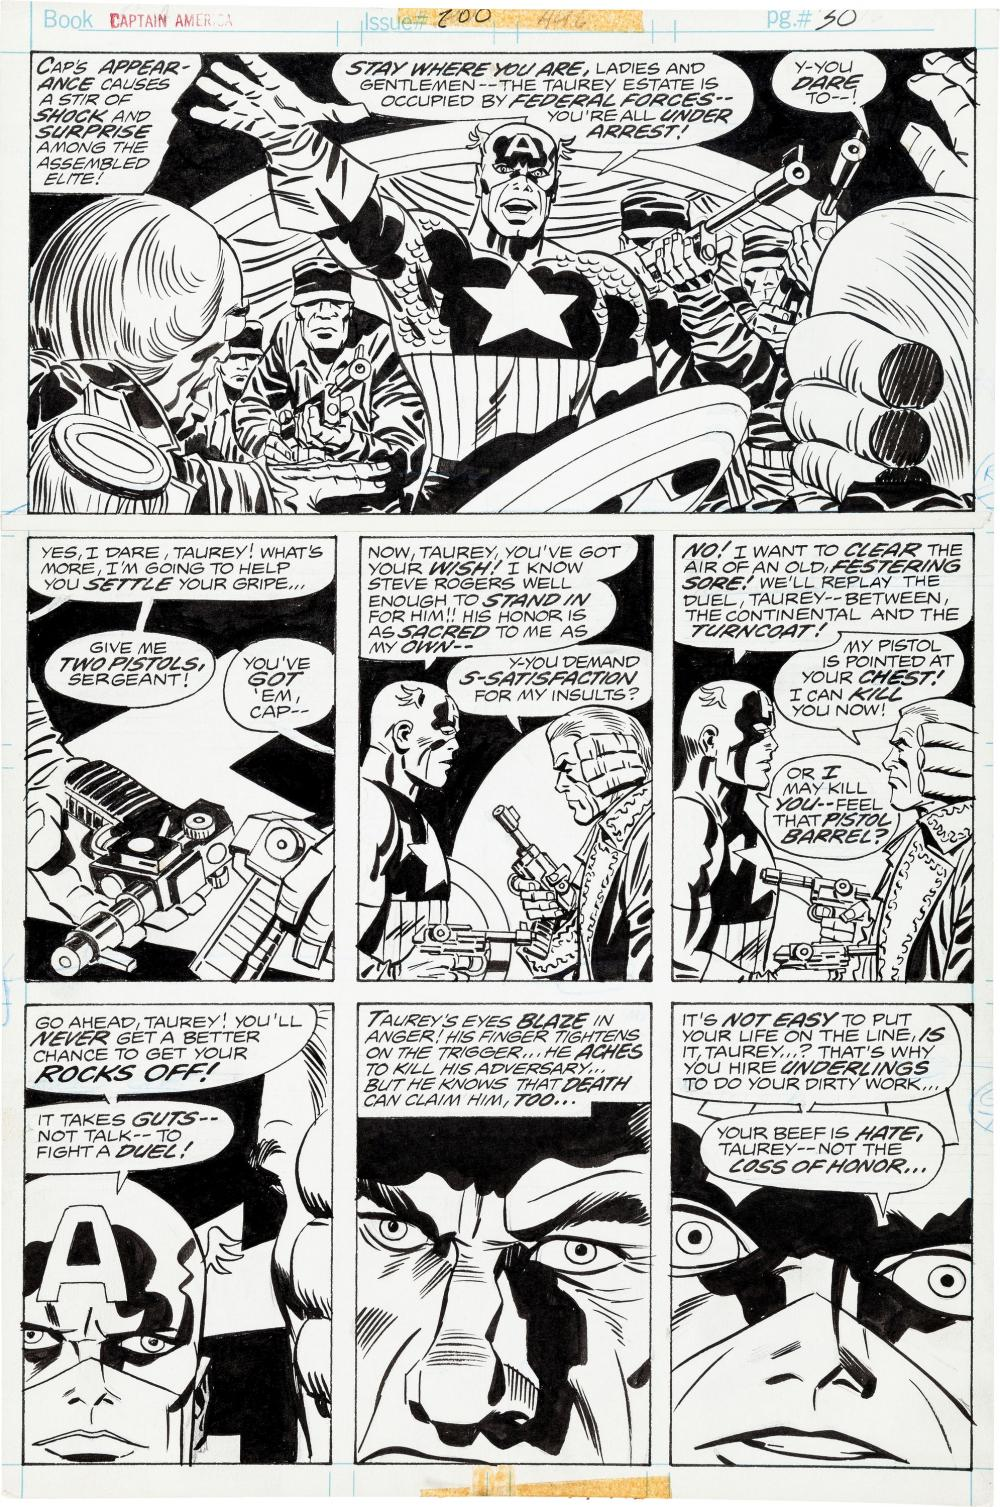 Jack Kirby Art For Sale Sweet Cover Killer Cap Page